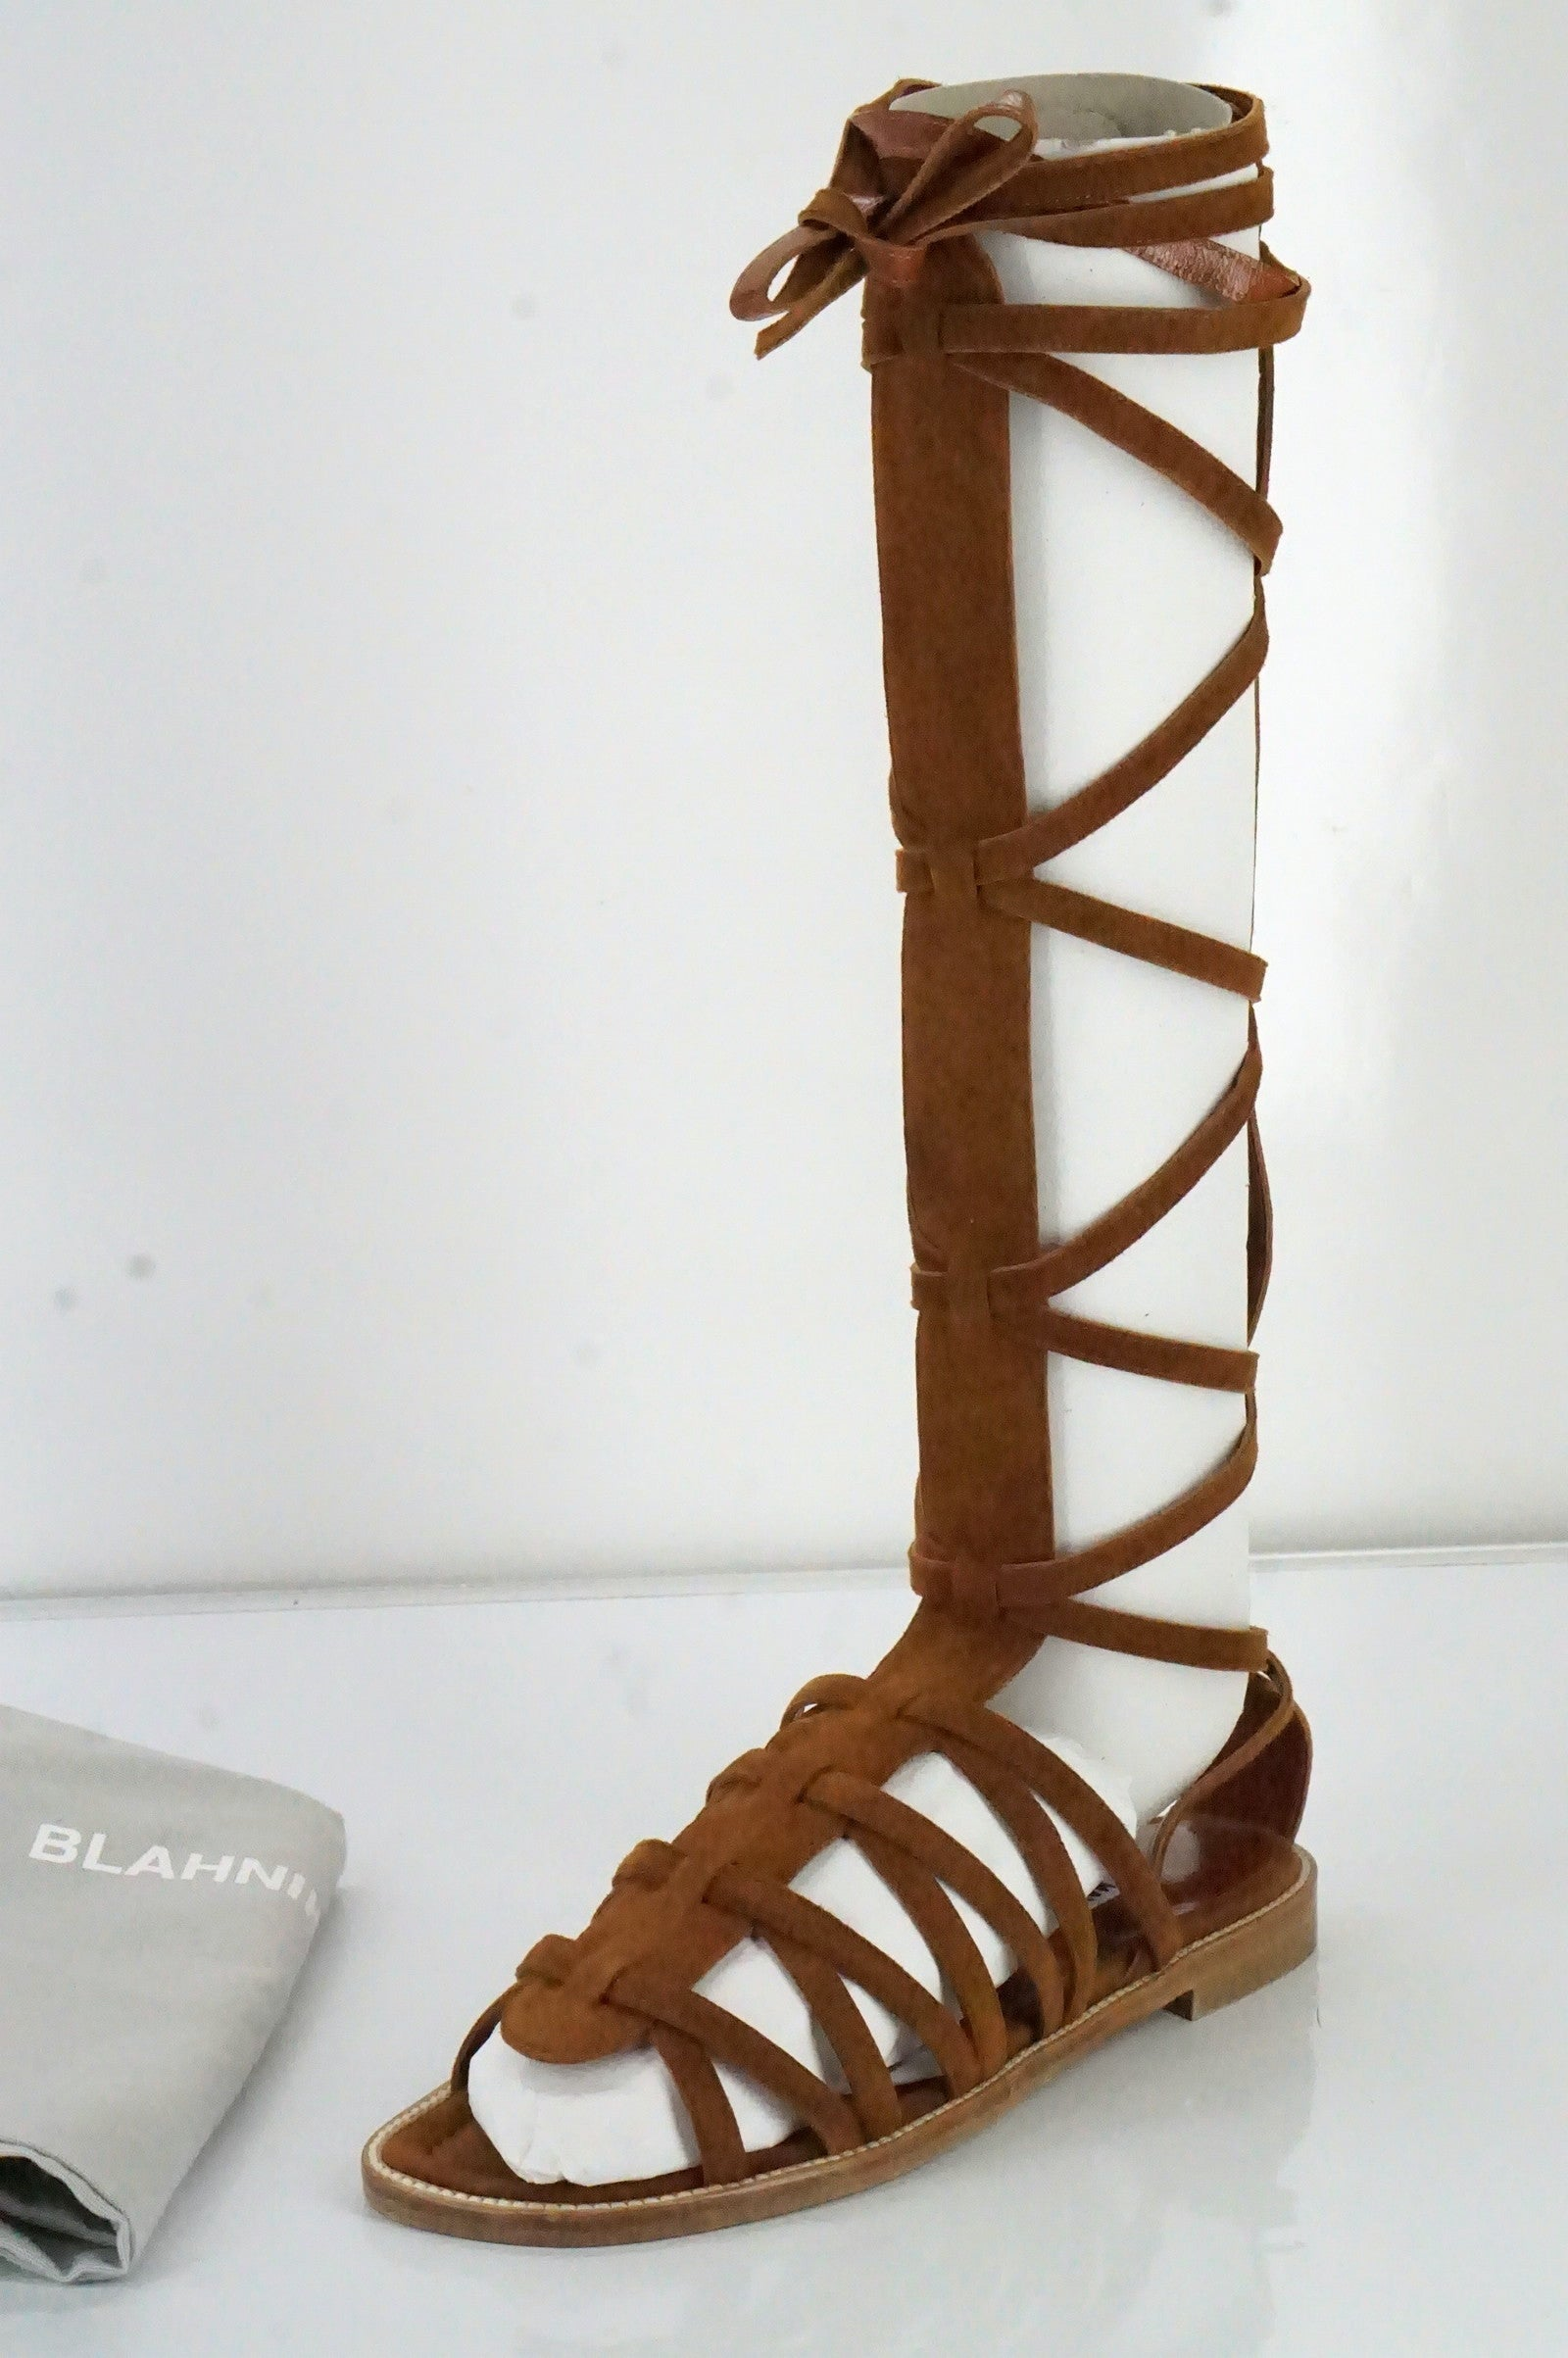 Manolo Blahnik Brown Suede 'Martihizi' Gladiator Sandals Size 36.5 New $1245